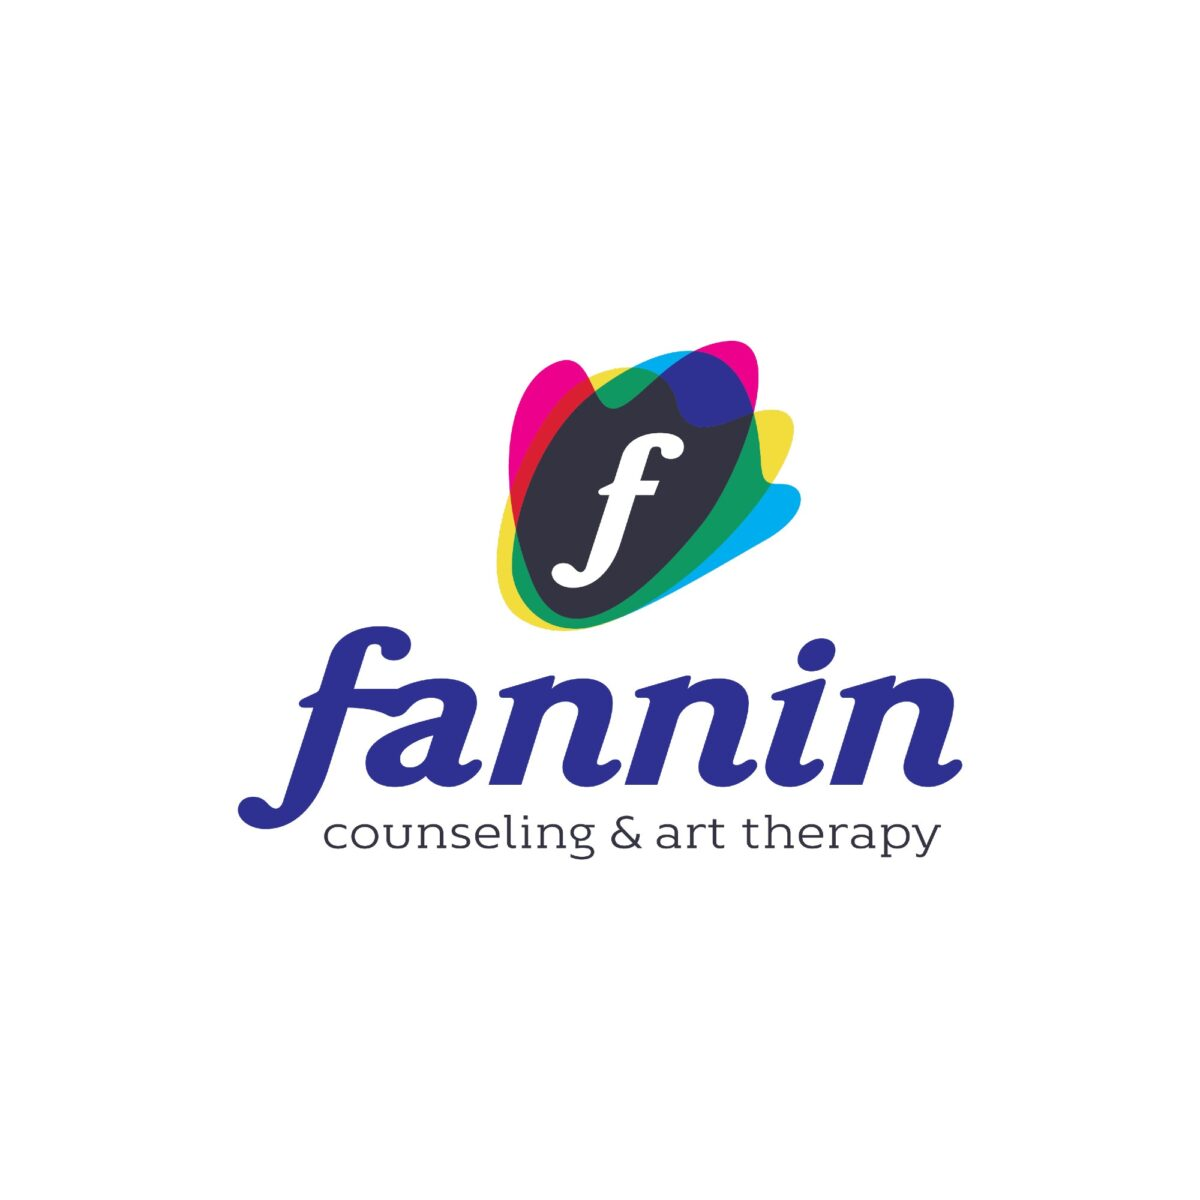 Fannin Counseling & Art Therapy